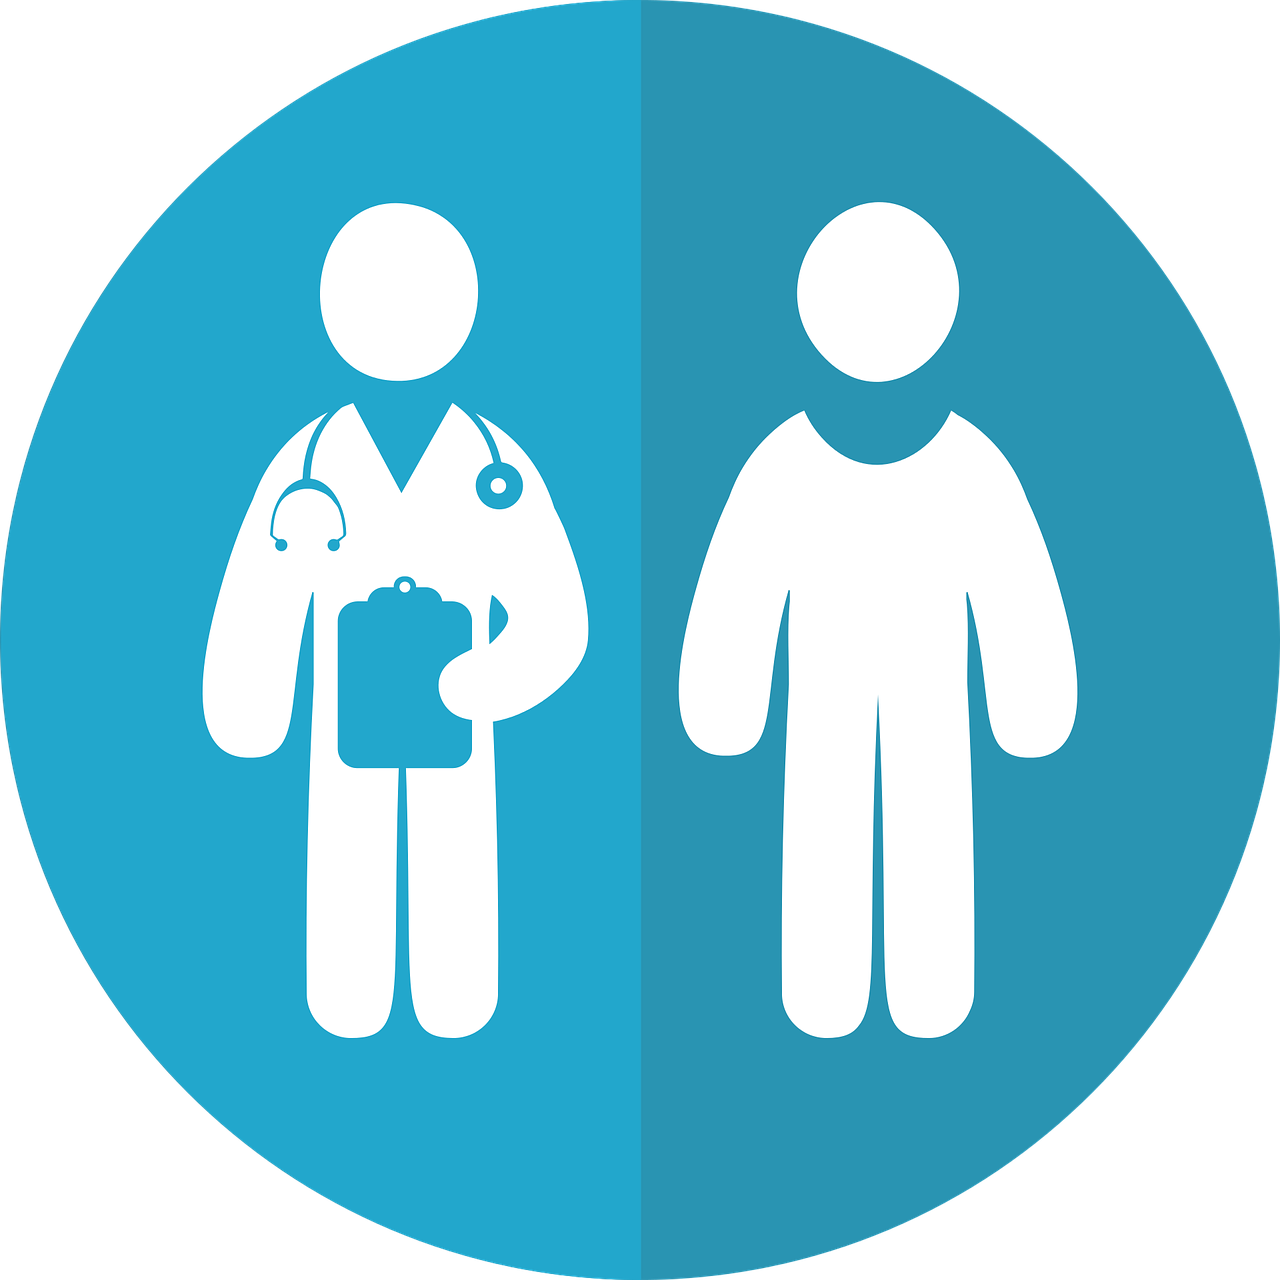 clinical-trial-icon-2793430_1280